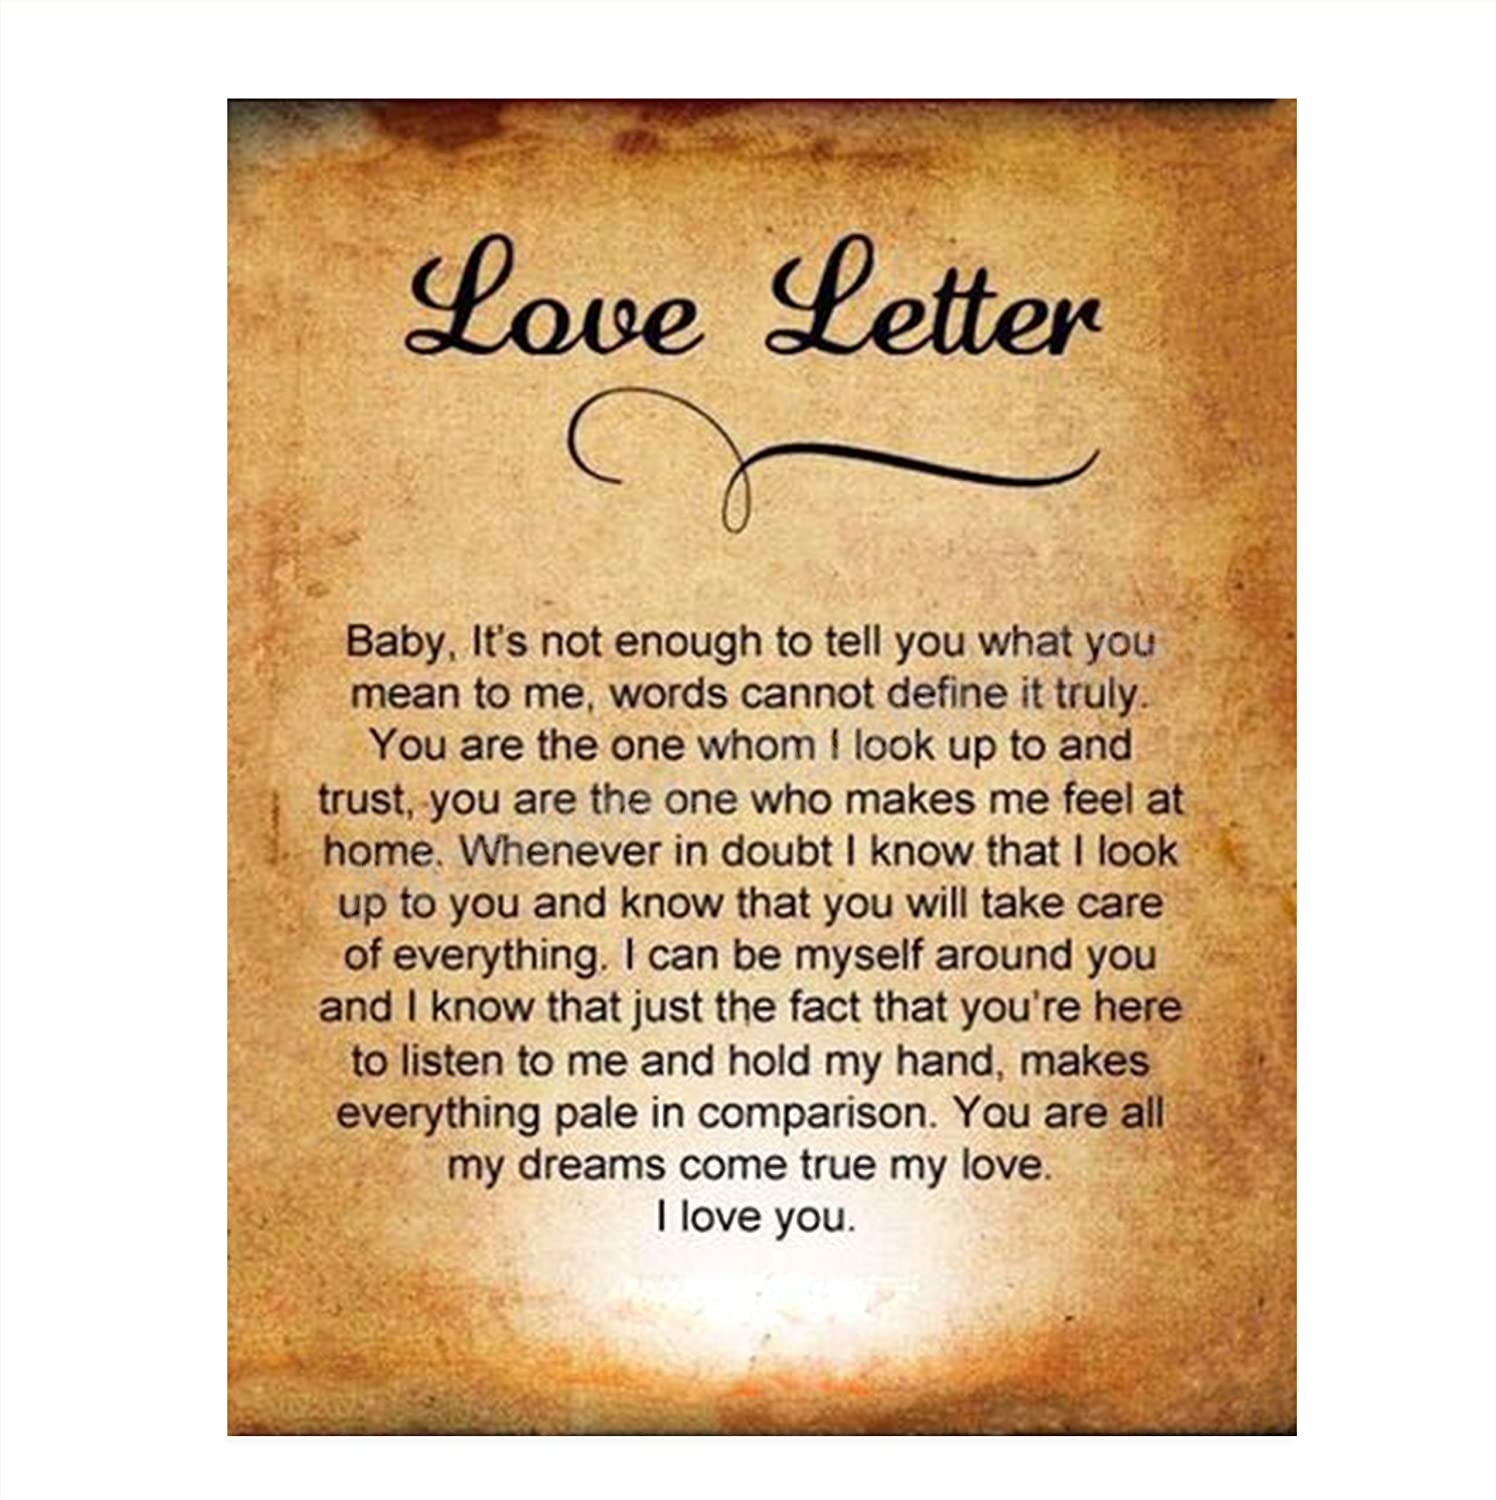 Letter To A Special Person from images-na.ssl-images-amazon.com